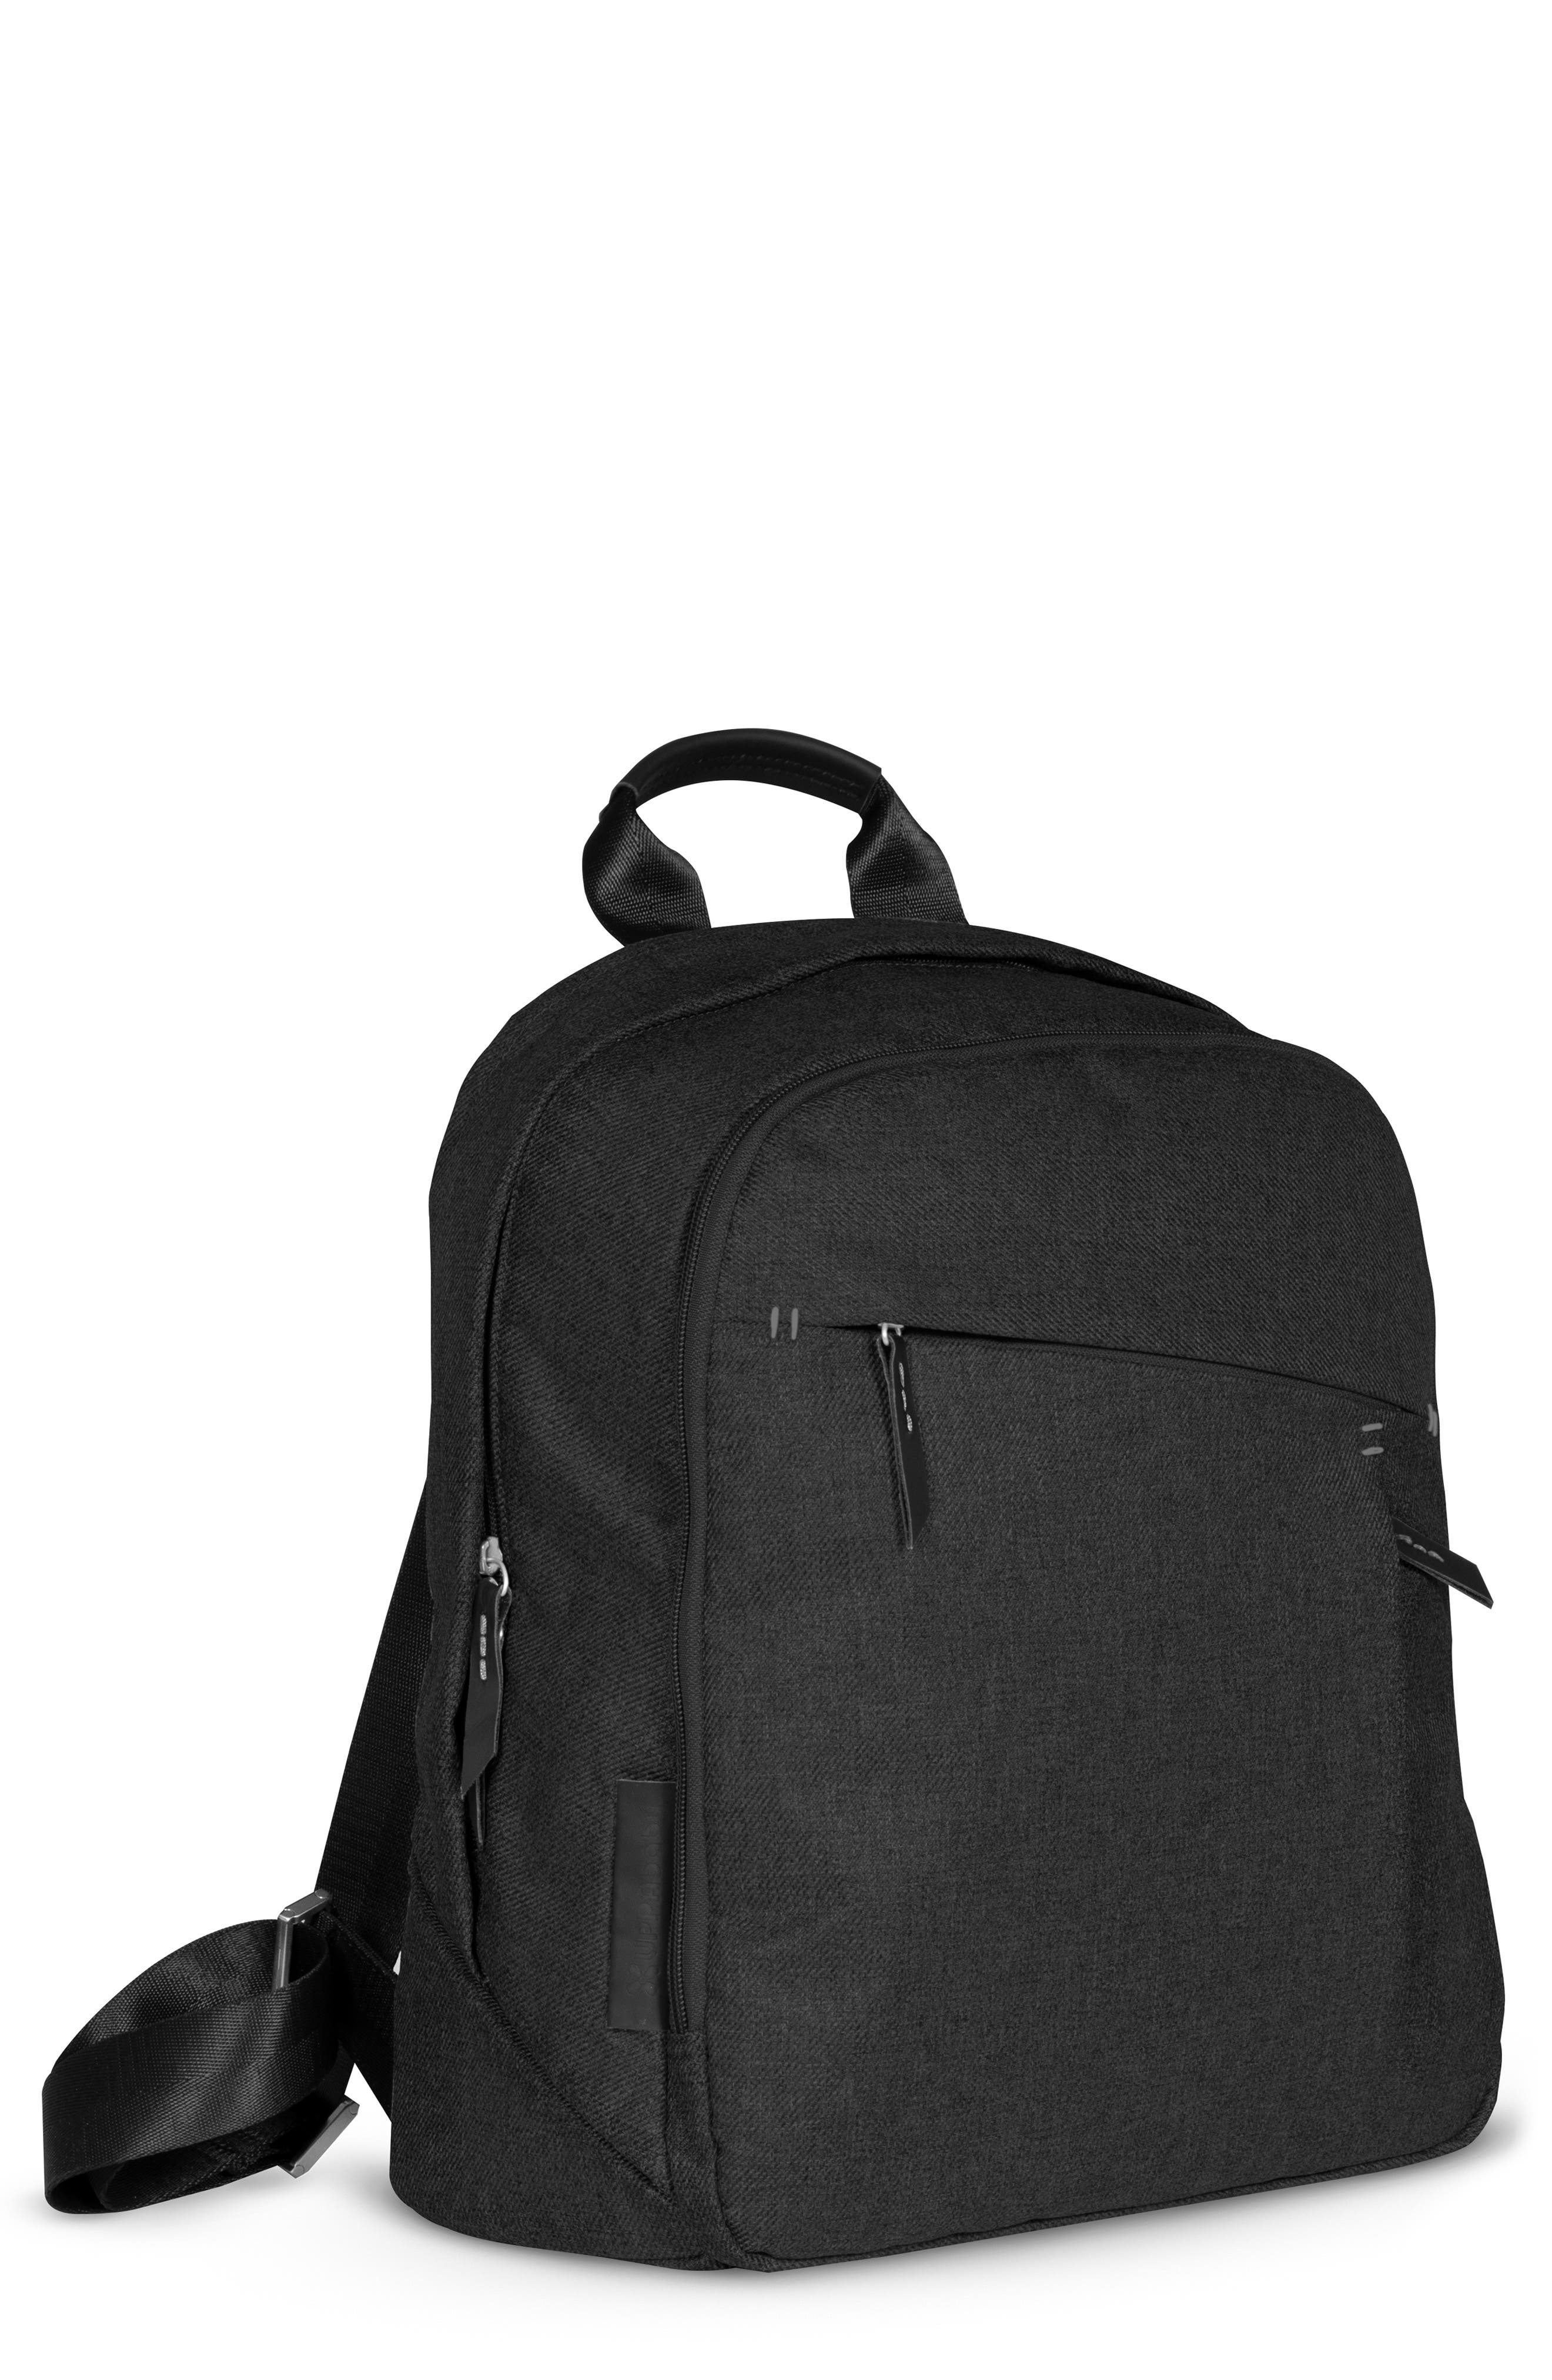 Infant Uppababy Diaper Changing Backpack  Black